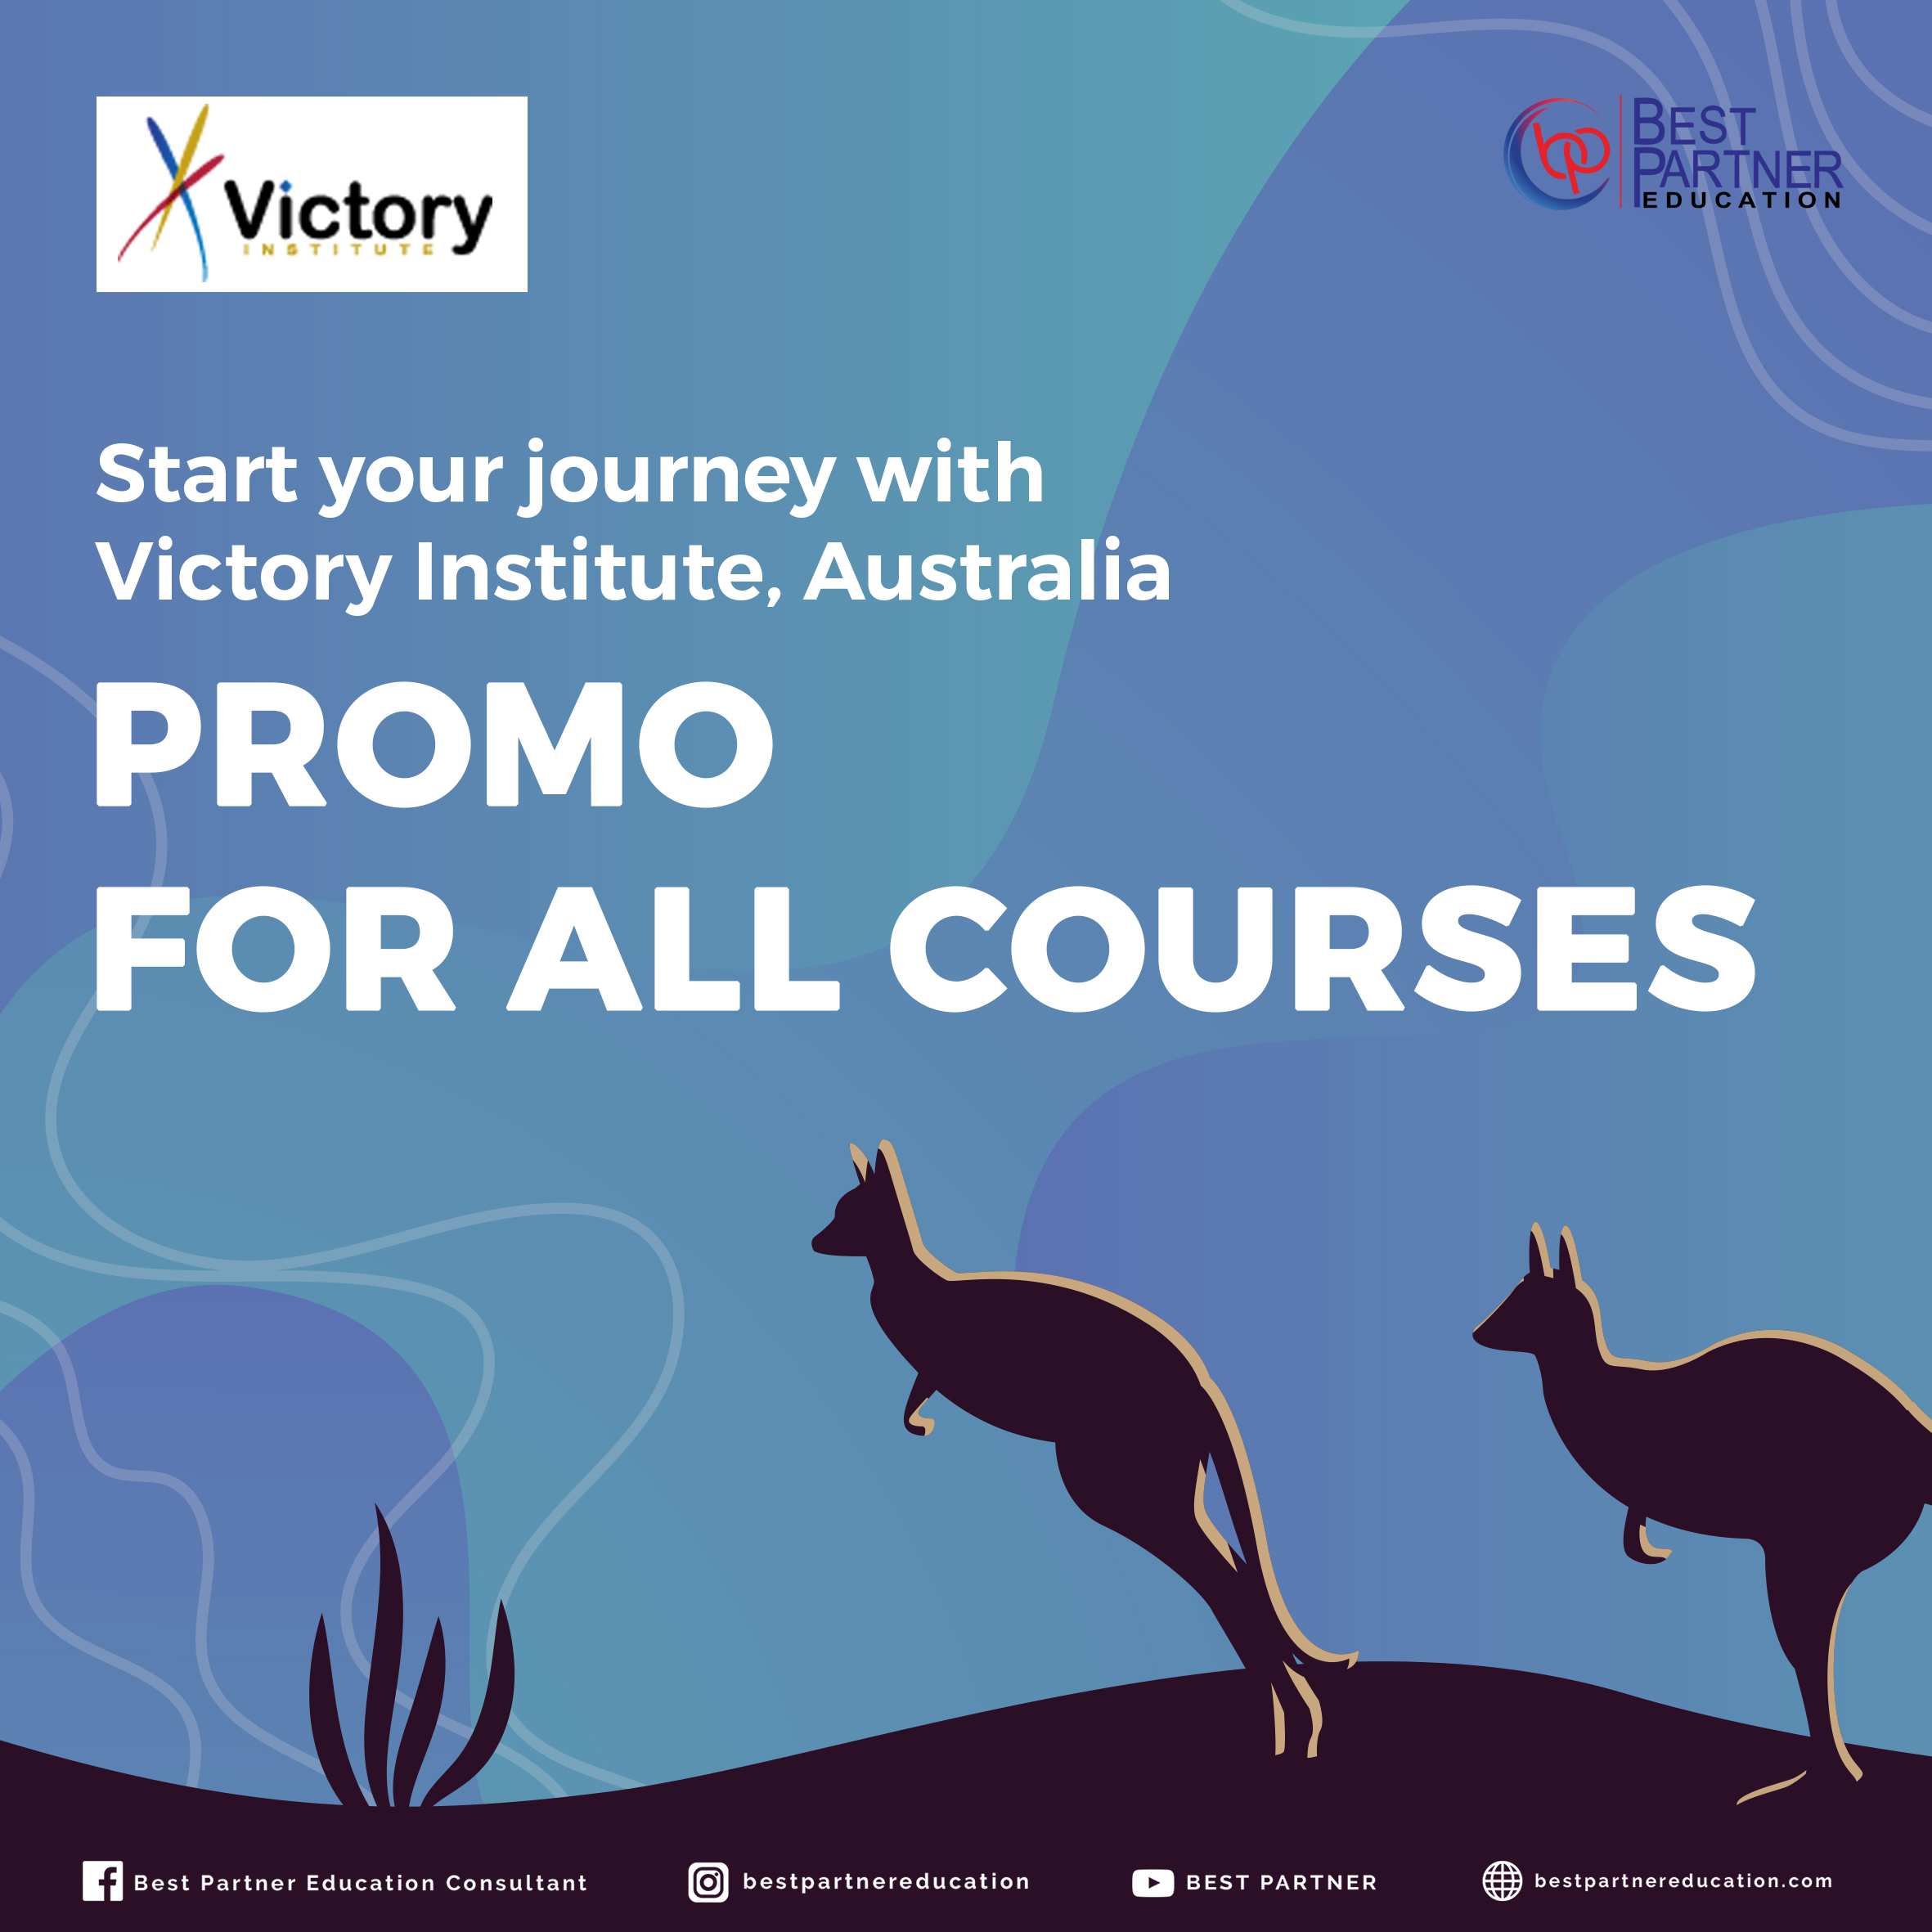 Promo for All Courses at Victory Institute